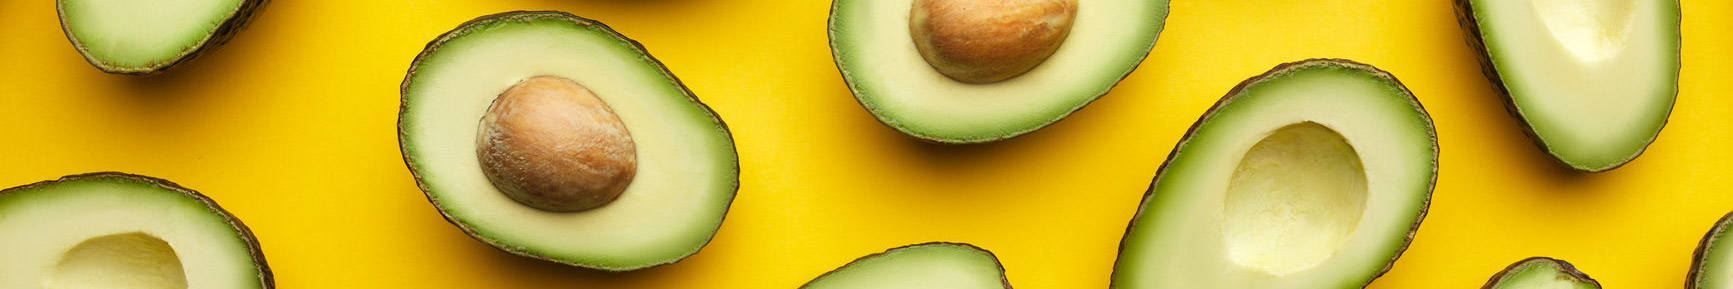 Avocados against a yellow background